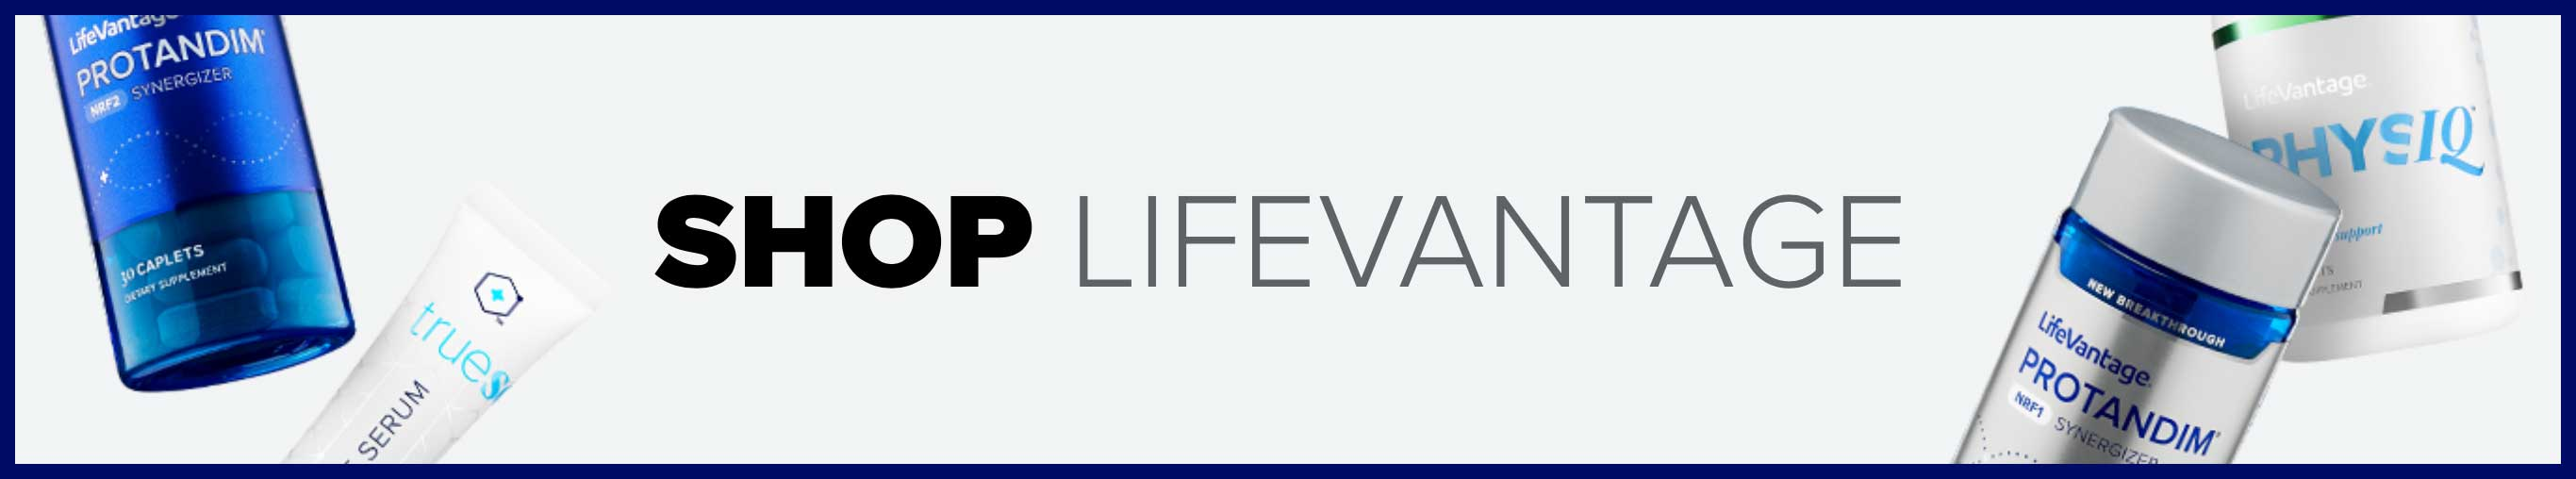 8-hands-healing-massage-Kim-Holman-Salem-lifevantage-shop-button